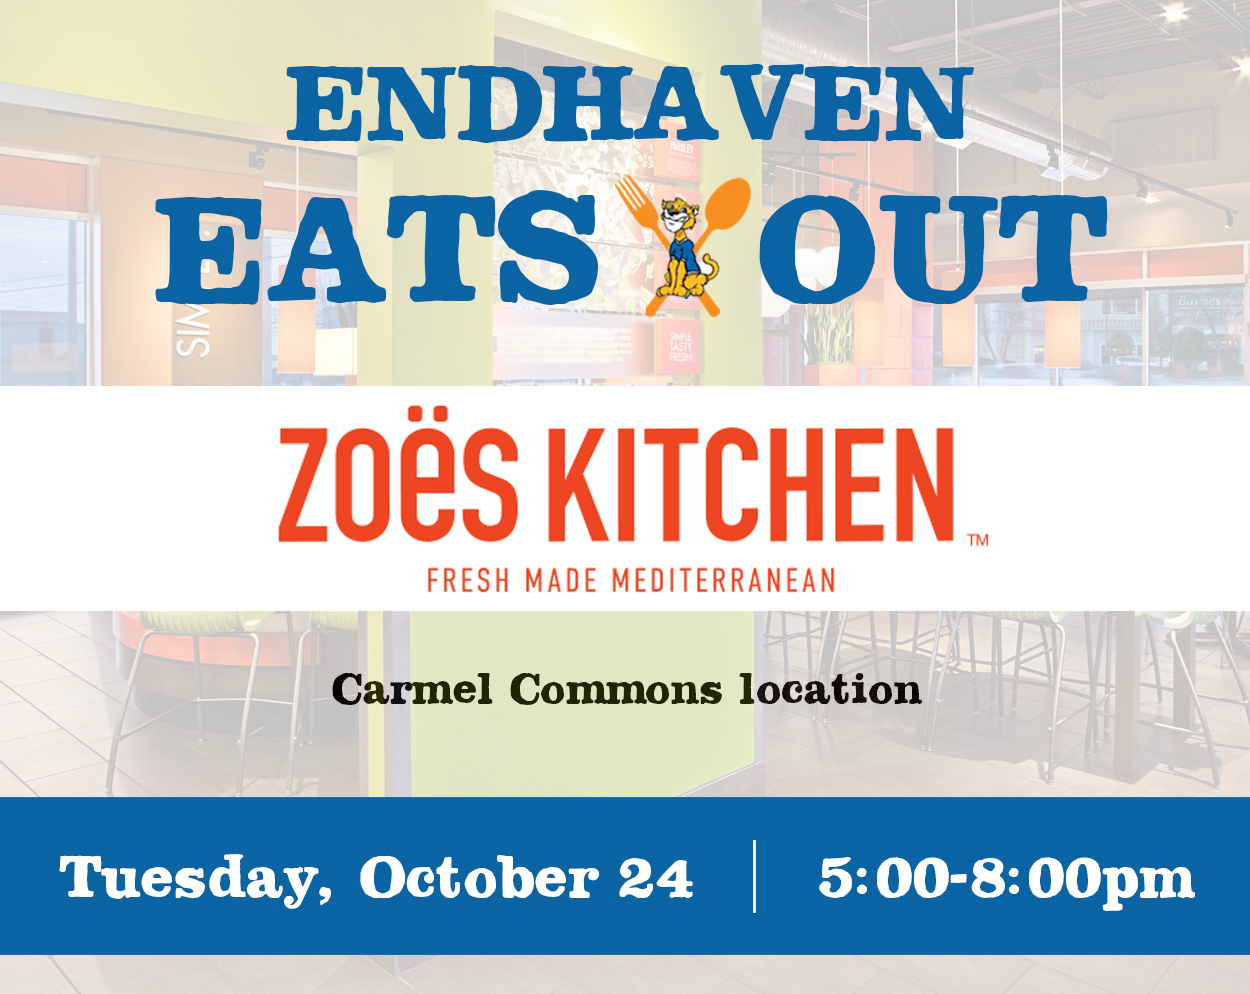 Endhaven Eats Out at Zoes Kitchen – October 24 – Endhaven Elementary PTA